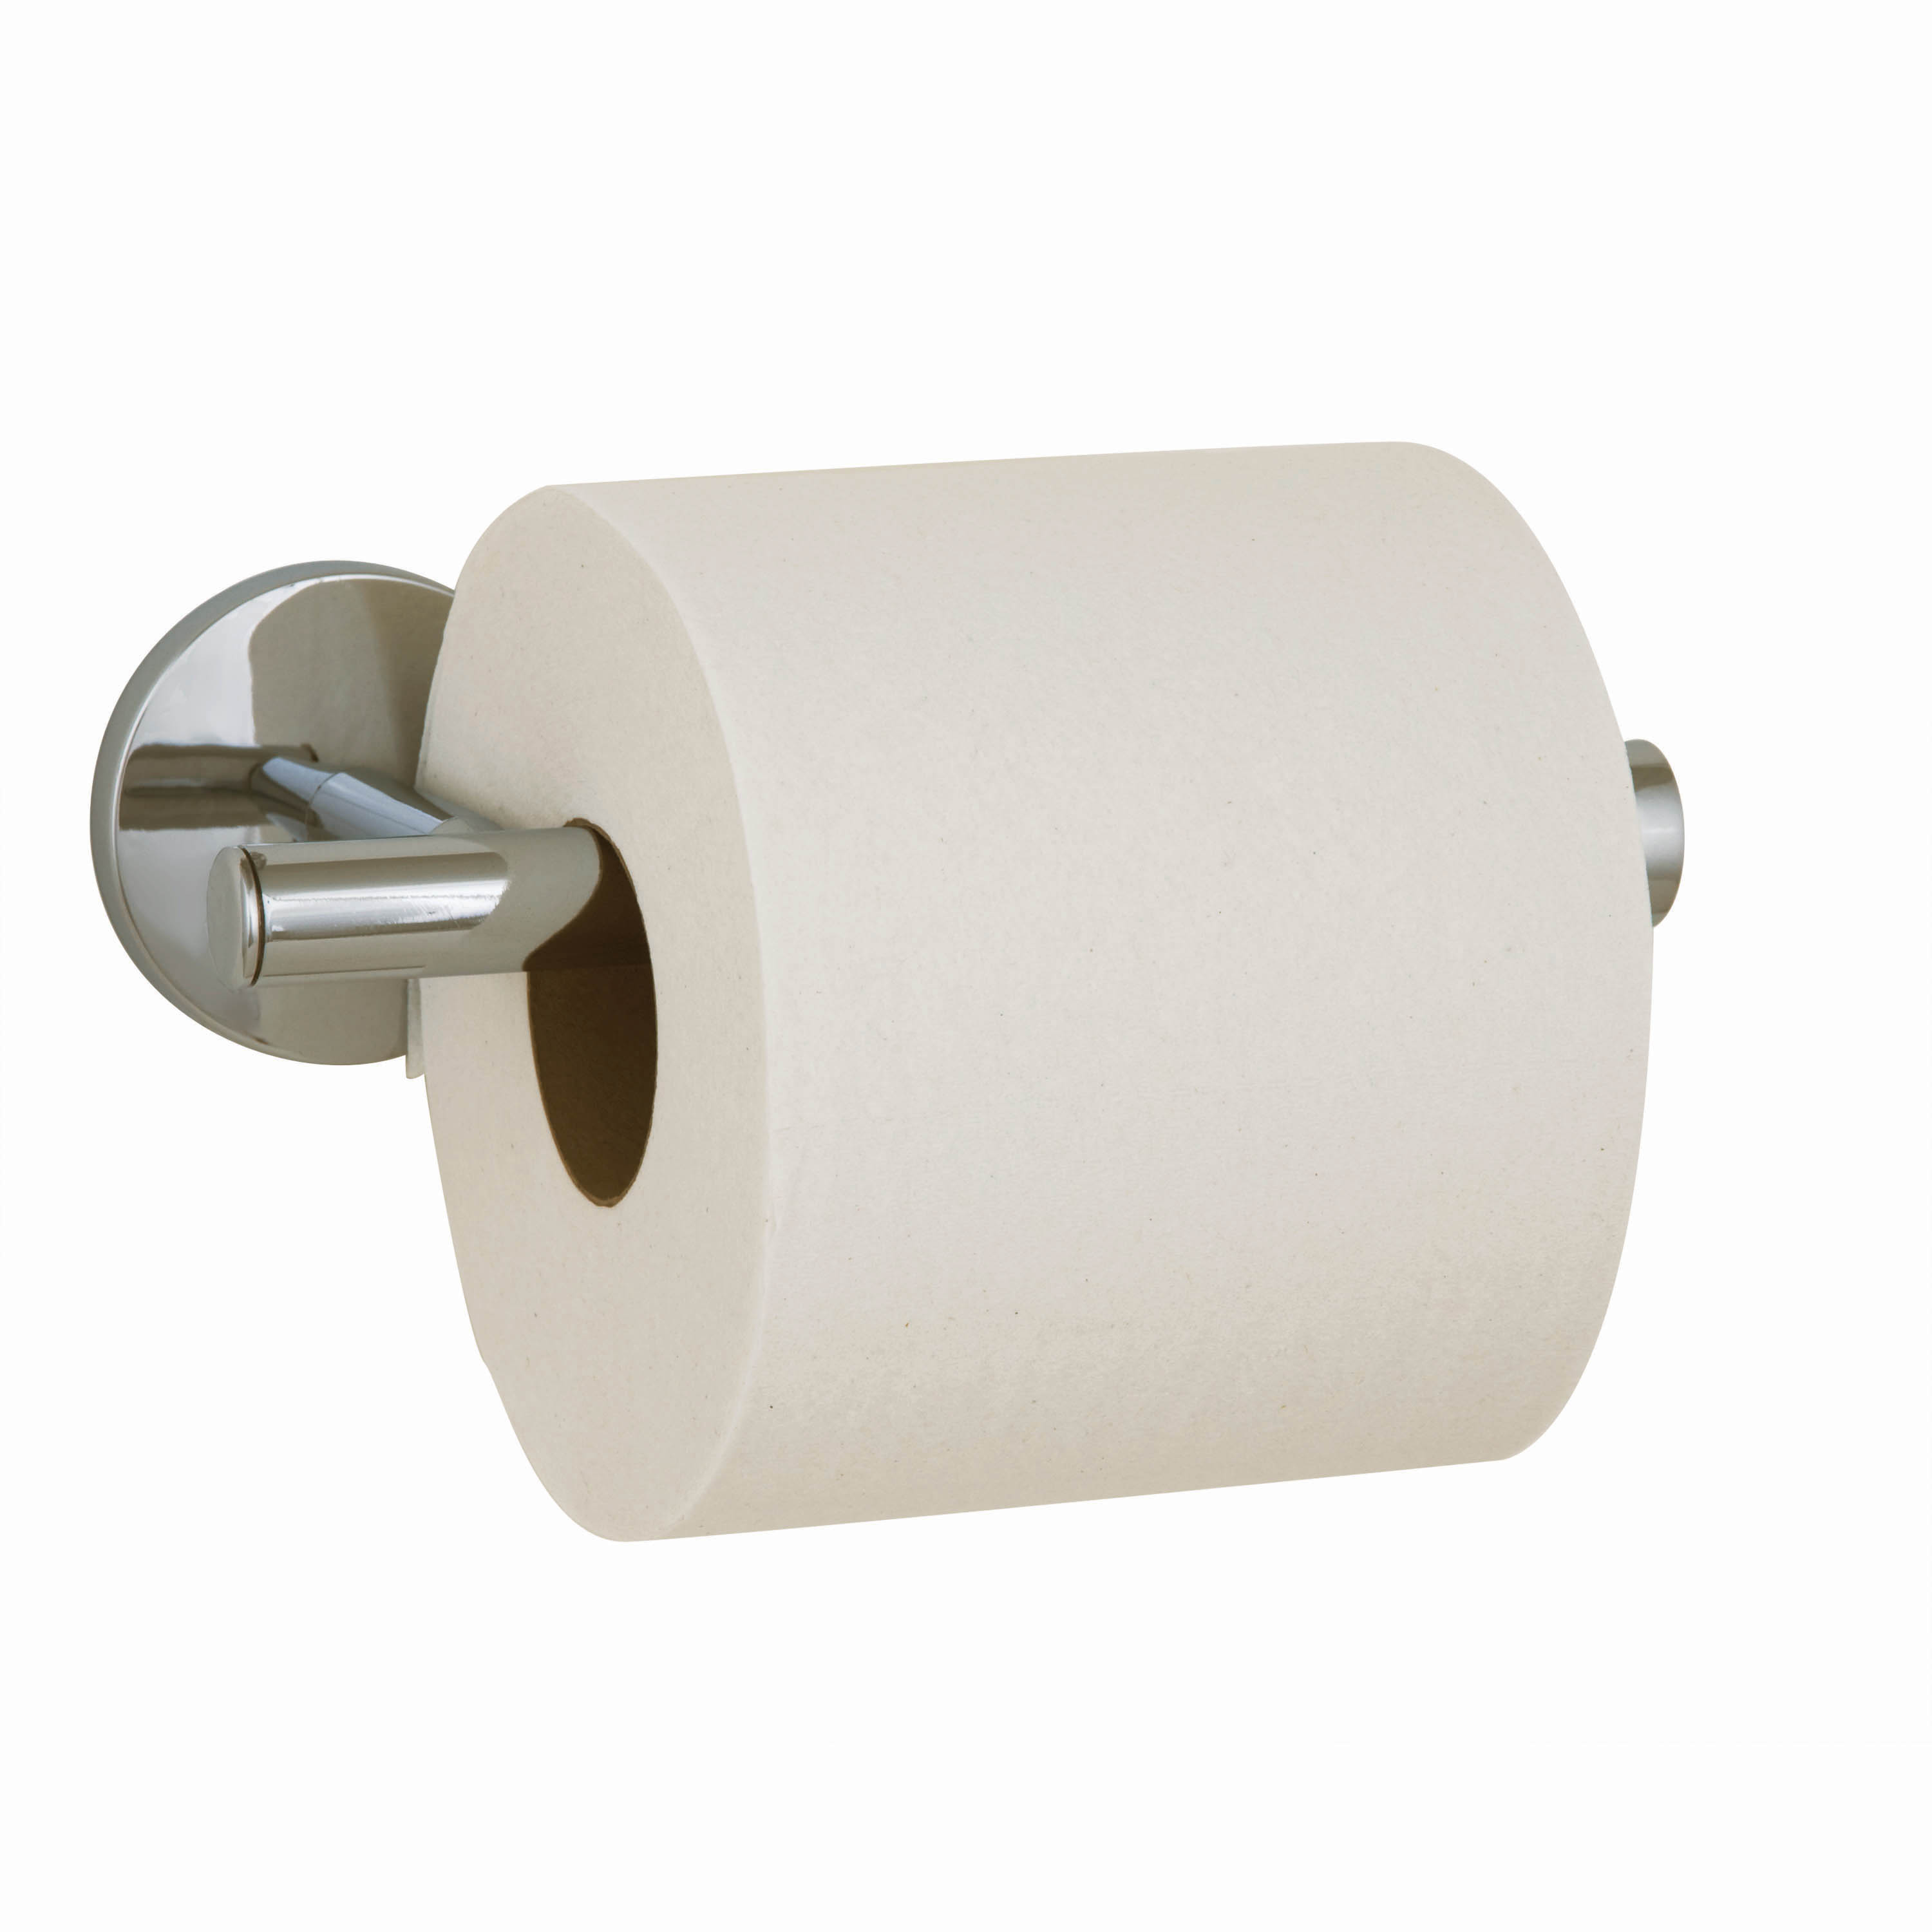 toliet paper holder Heavy duty, weighted non-slip base provide stability and security removable arm to ease the refill of the paper roll reserve modern vertical toilet paper stand and.